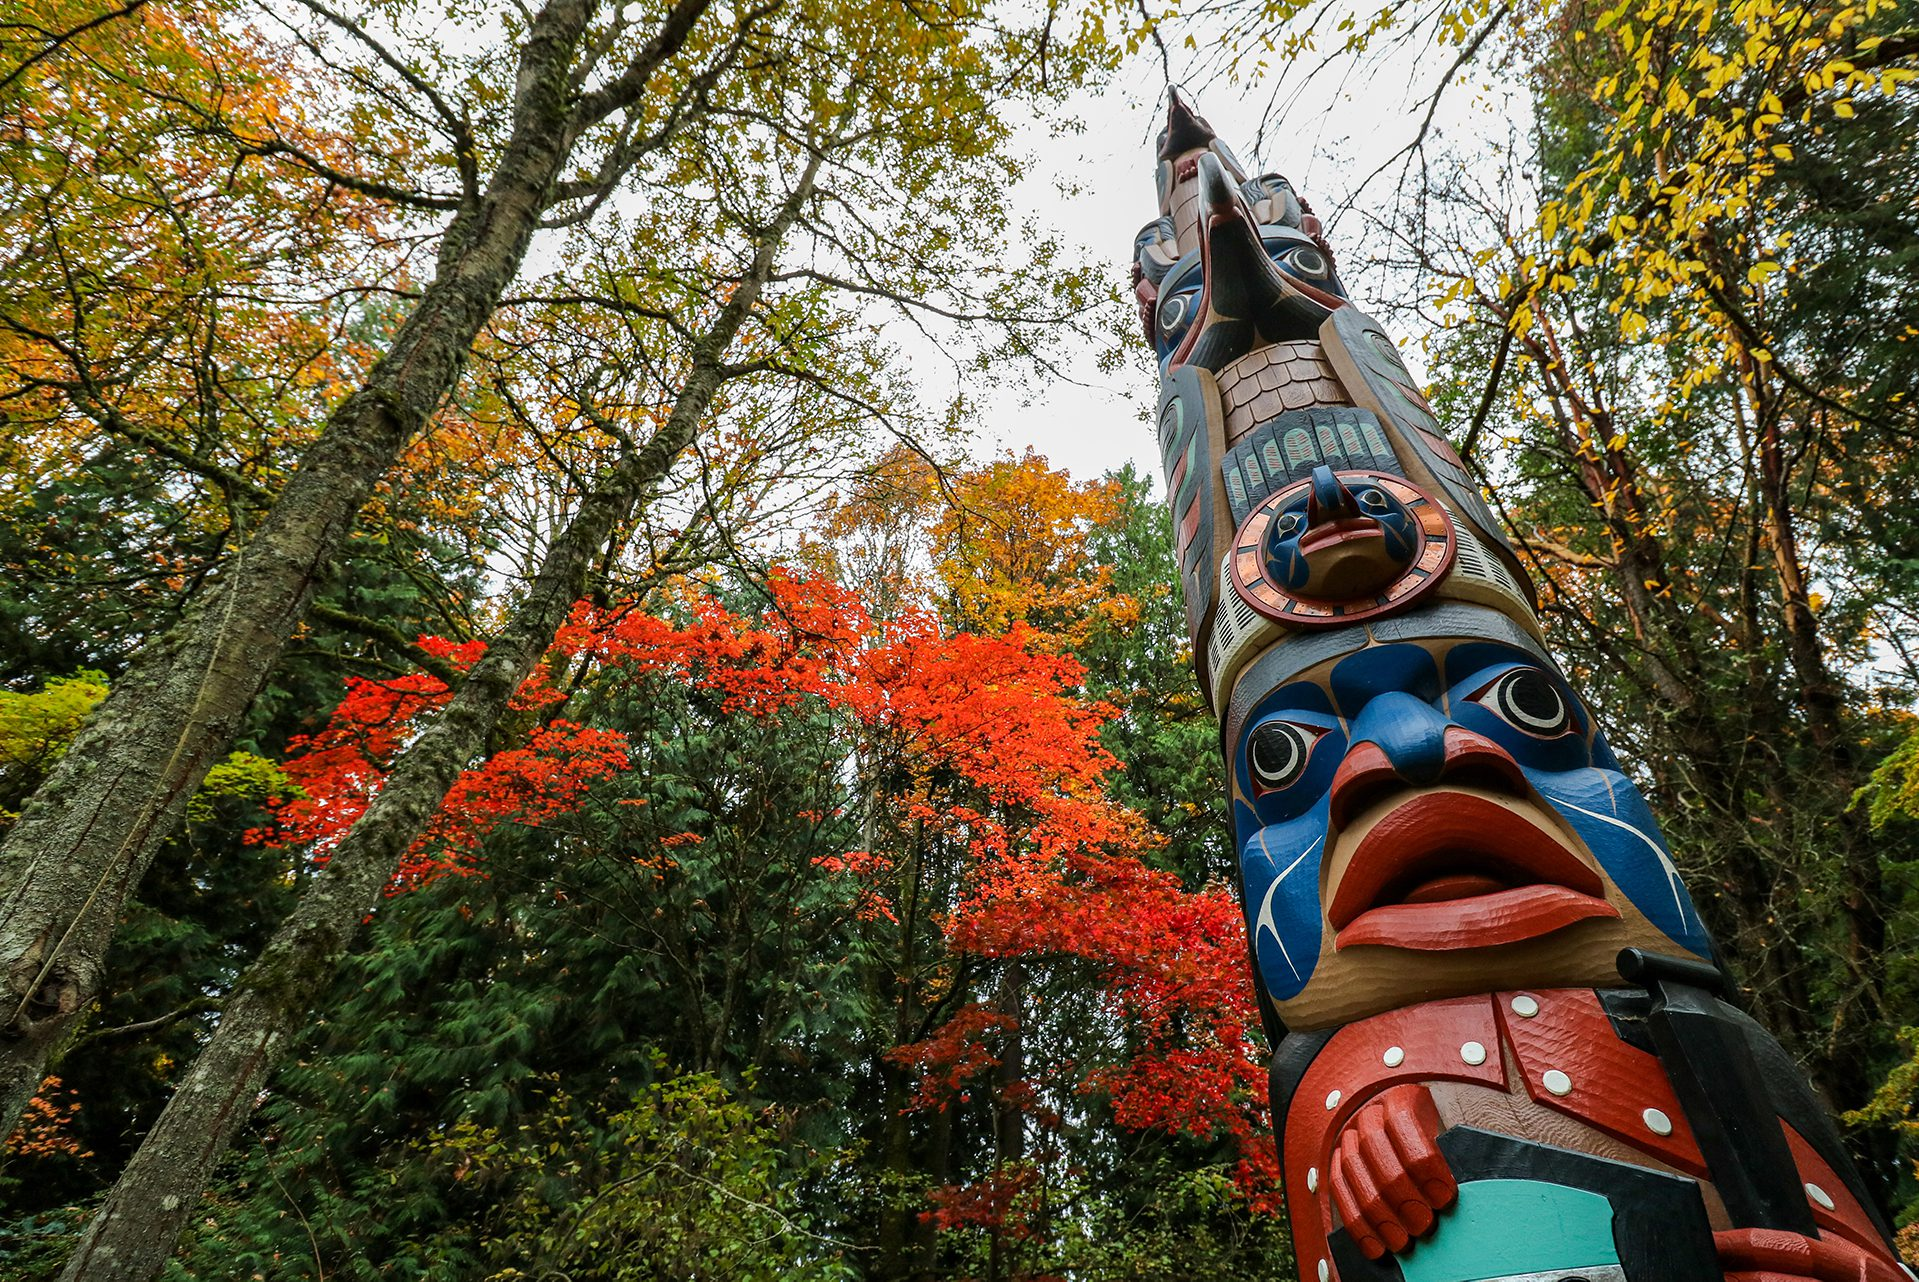 totem pole with fall colors